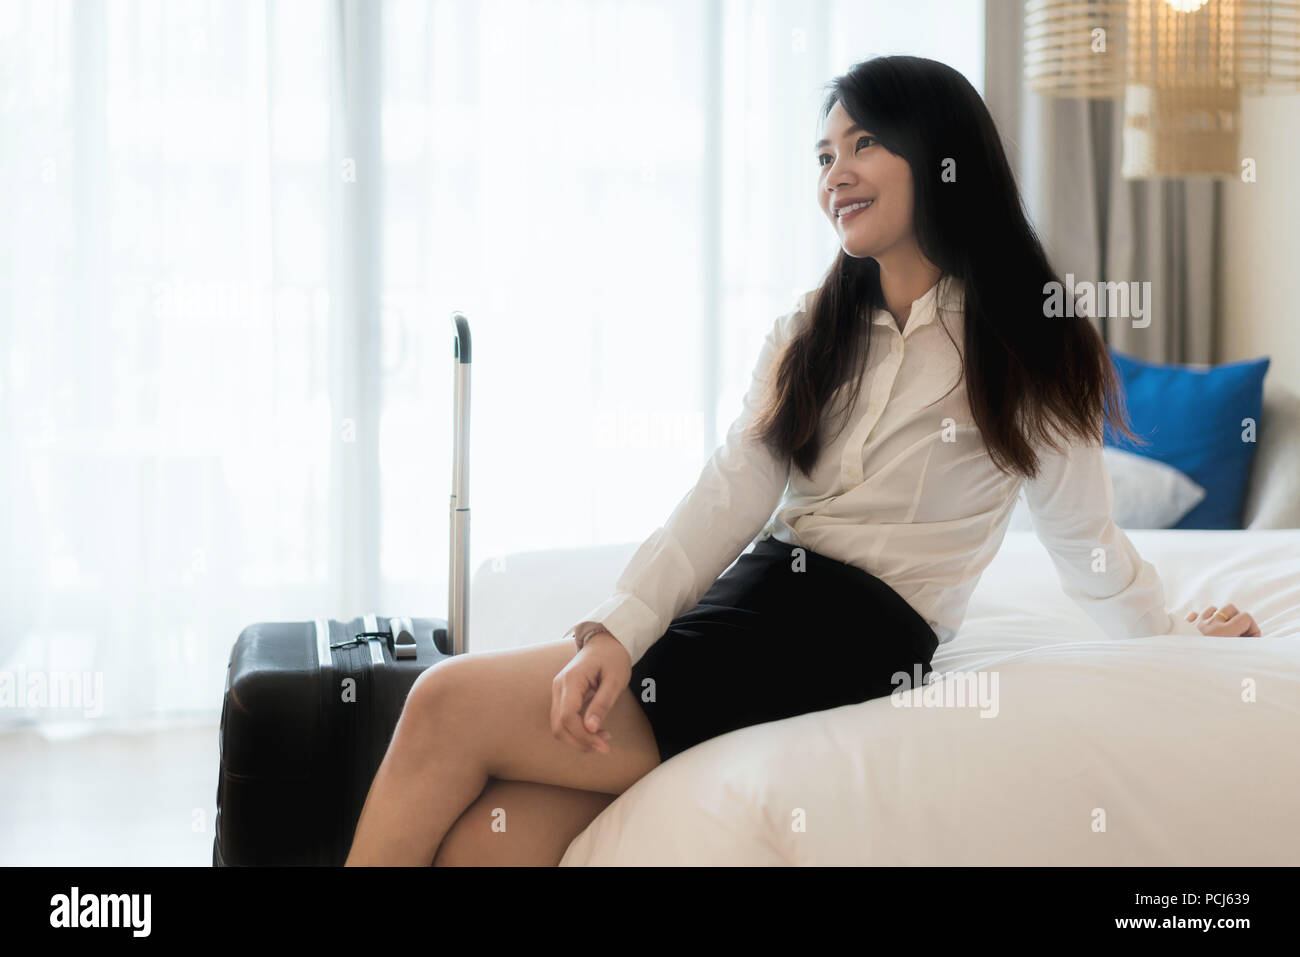 Smiling Asian business woman sitting on bed in hotel room. Business travel concept. - Stock Image